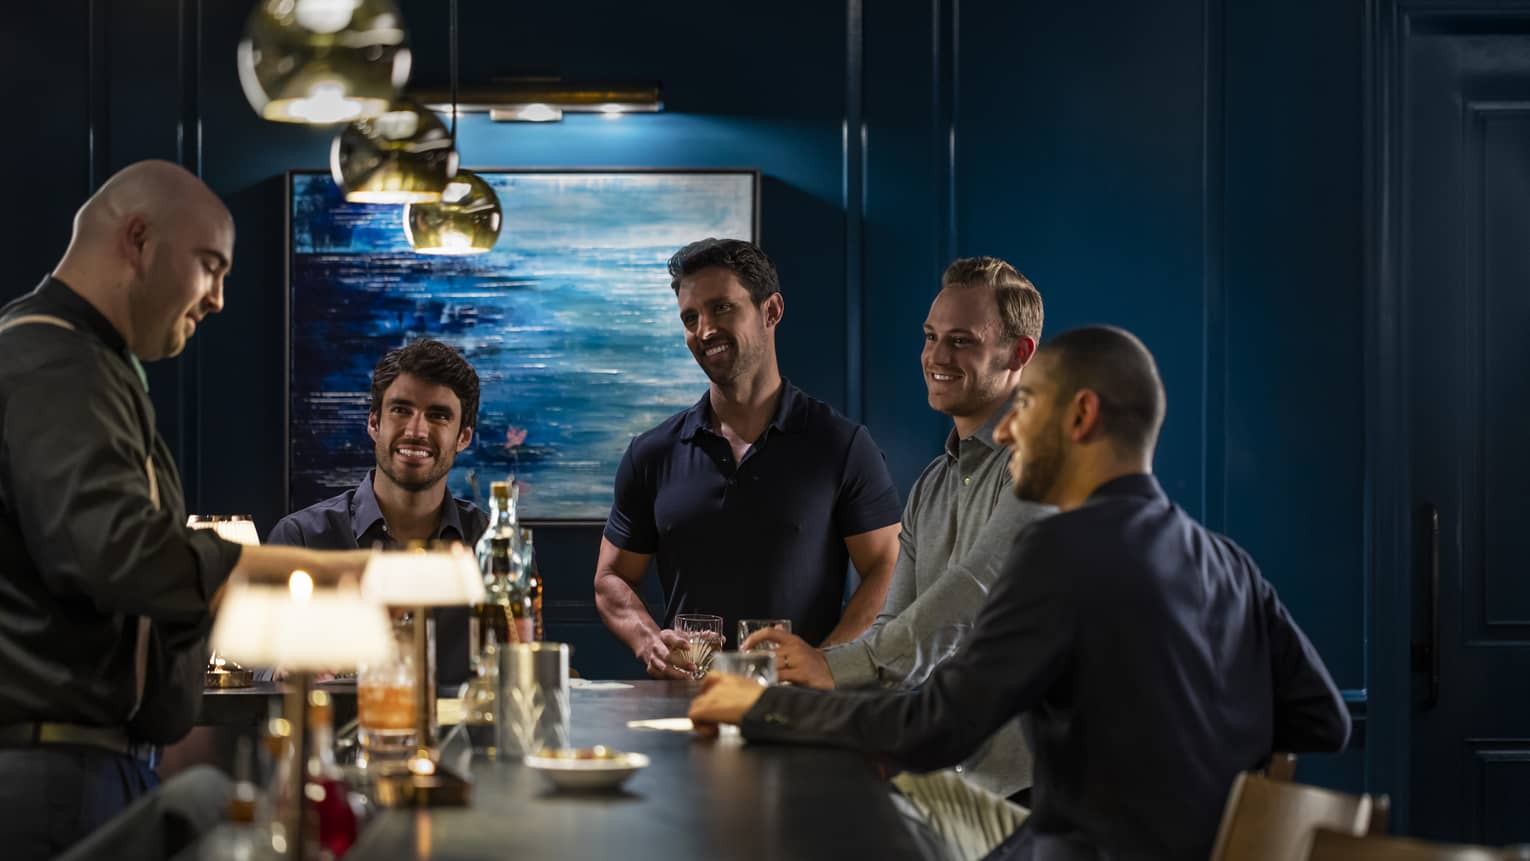 A group of men watch the bartender pour a drink